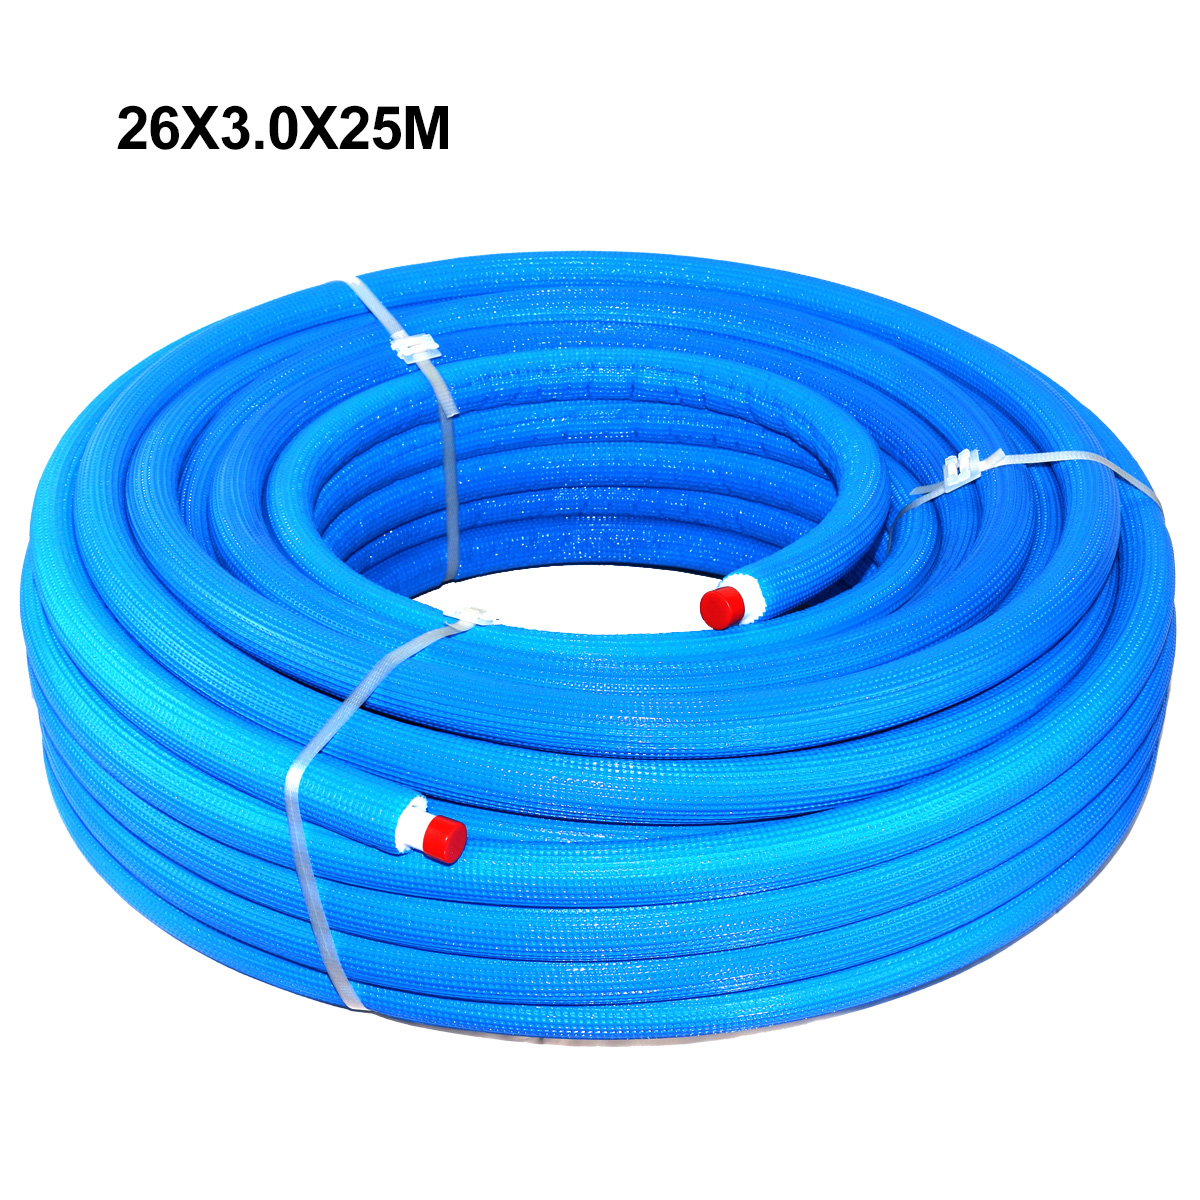 PEX-AL-PEX Multilayer Insulated Pipe Insulation Blue 26 x 3.0 × 25 m